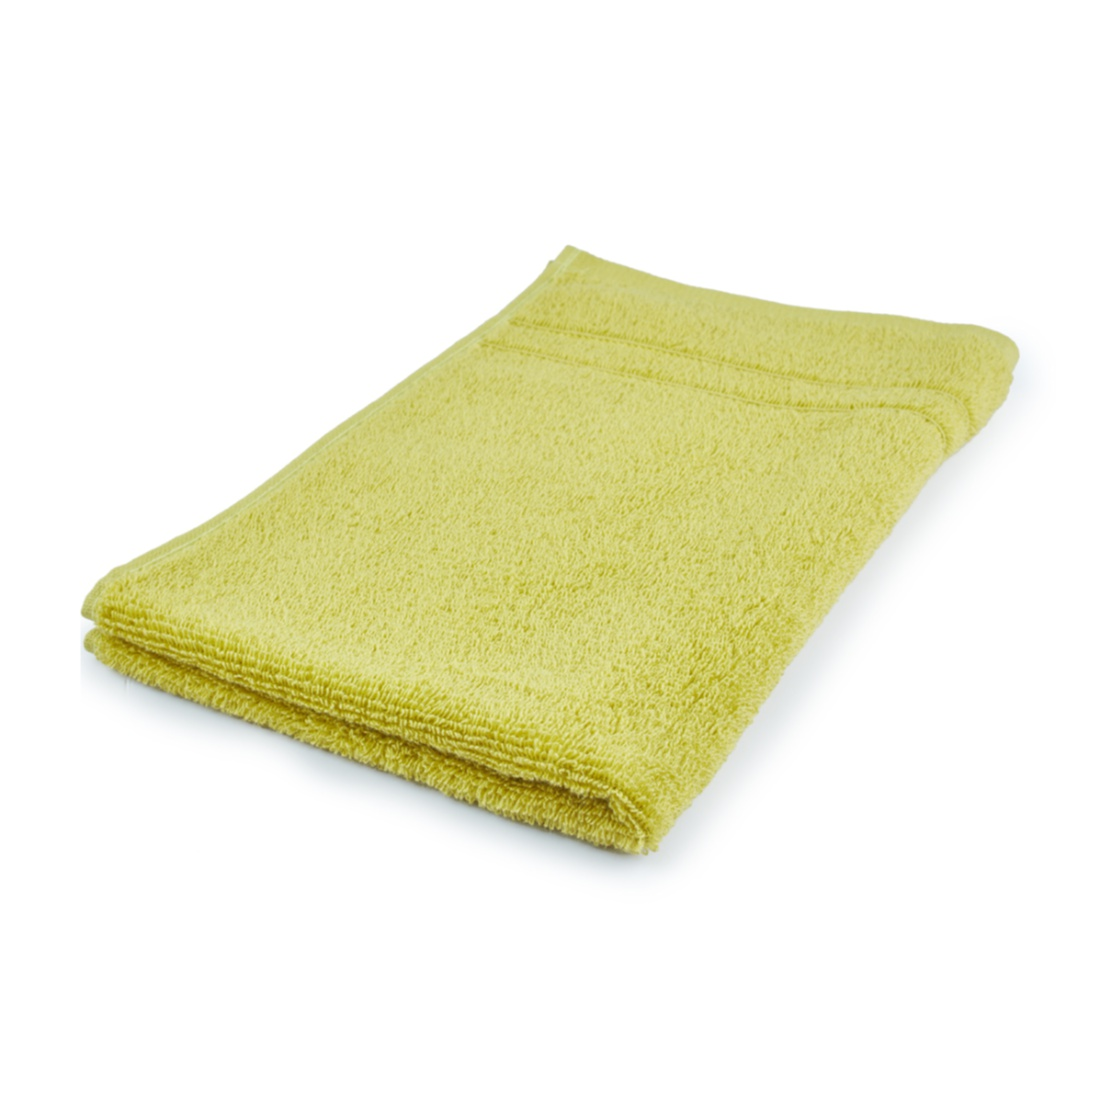 Nora Hand Towel Cotton Hand Towels in Zest Colour by Living Essence